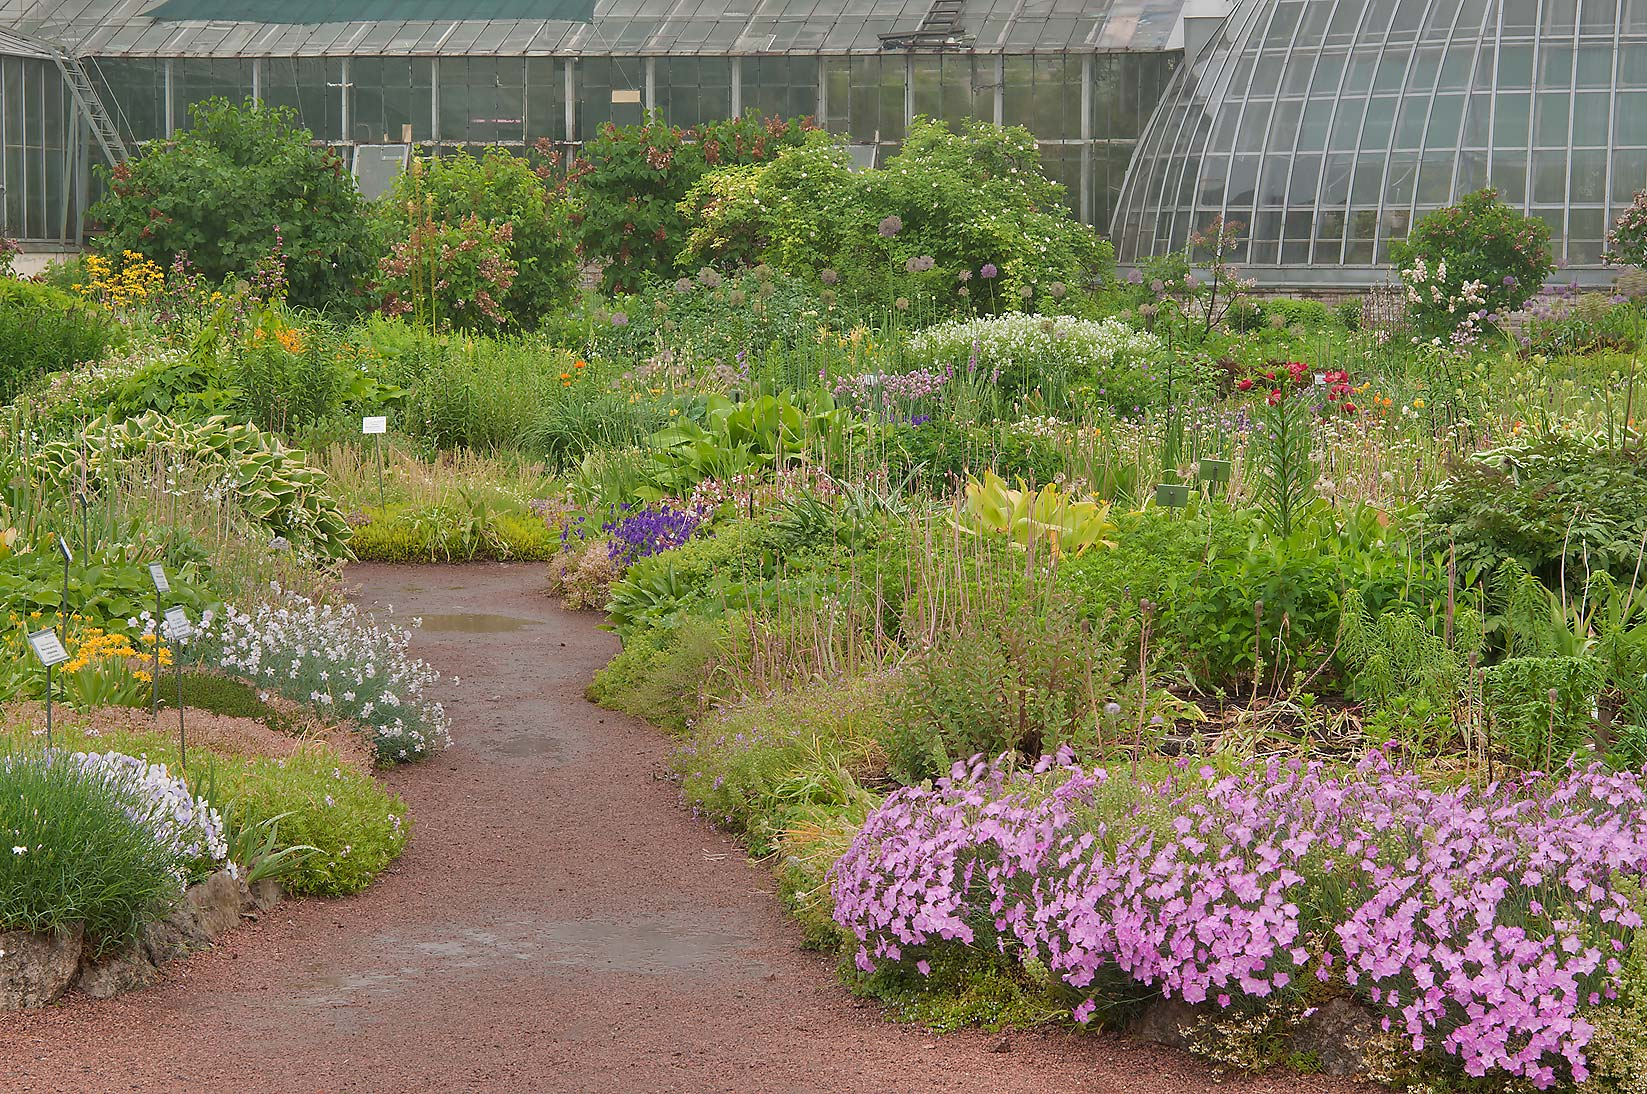 Photo 966 06 Flowers And Greenhouses In Botanic Gardens Of Institute St Petersburg Russia